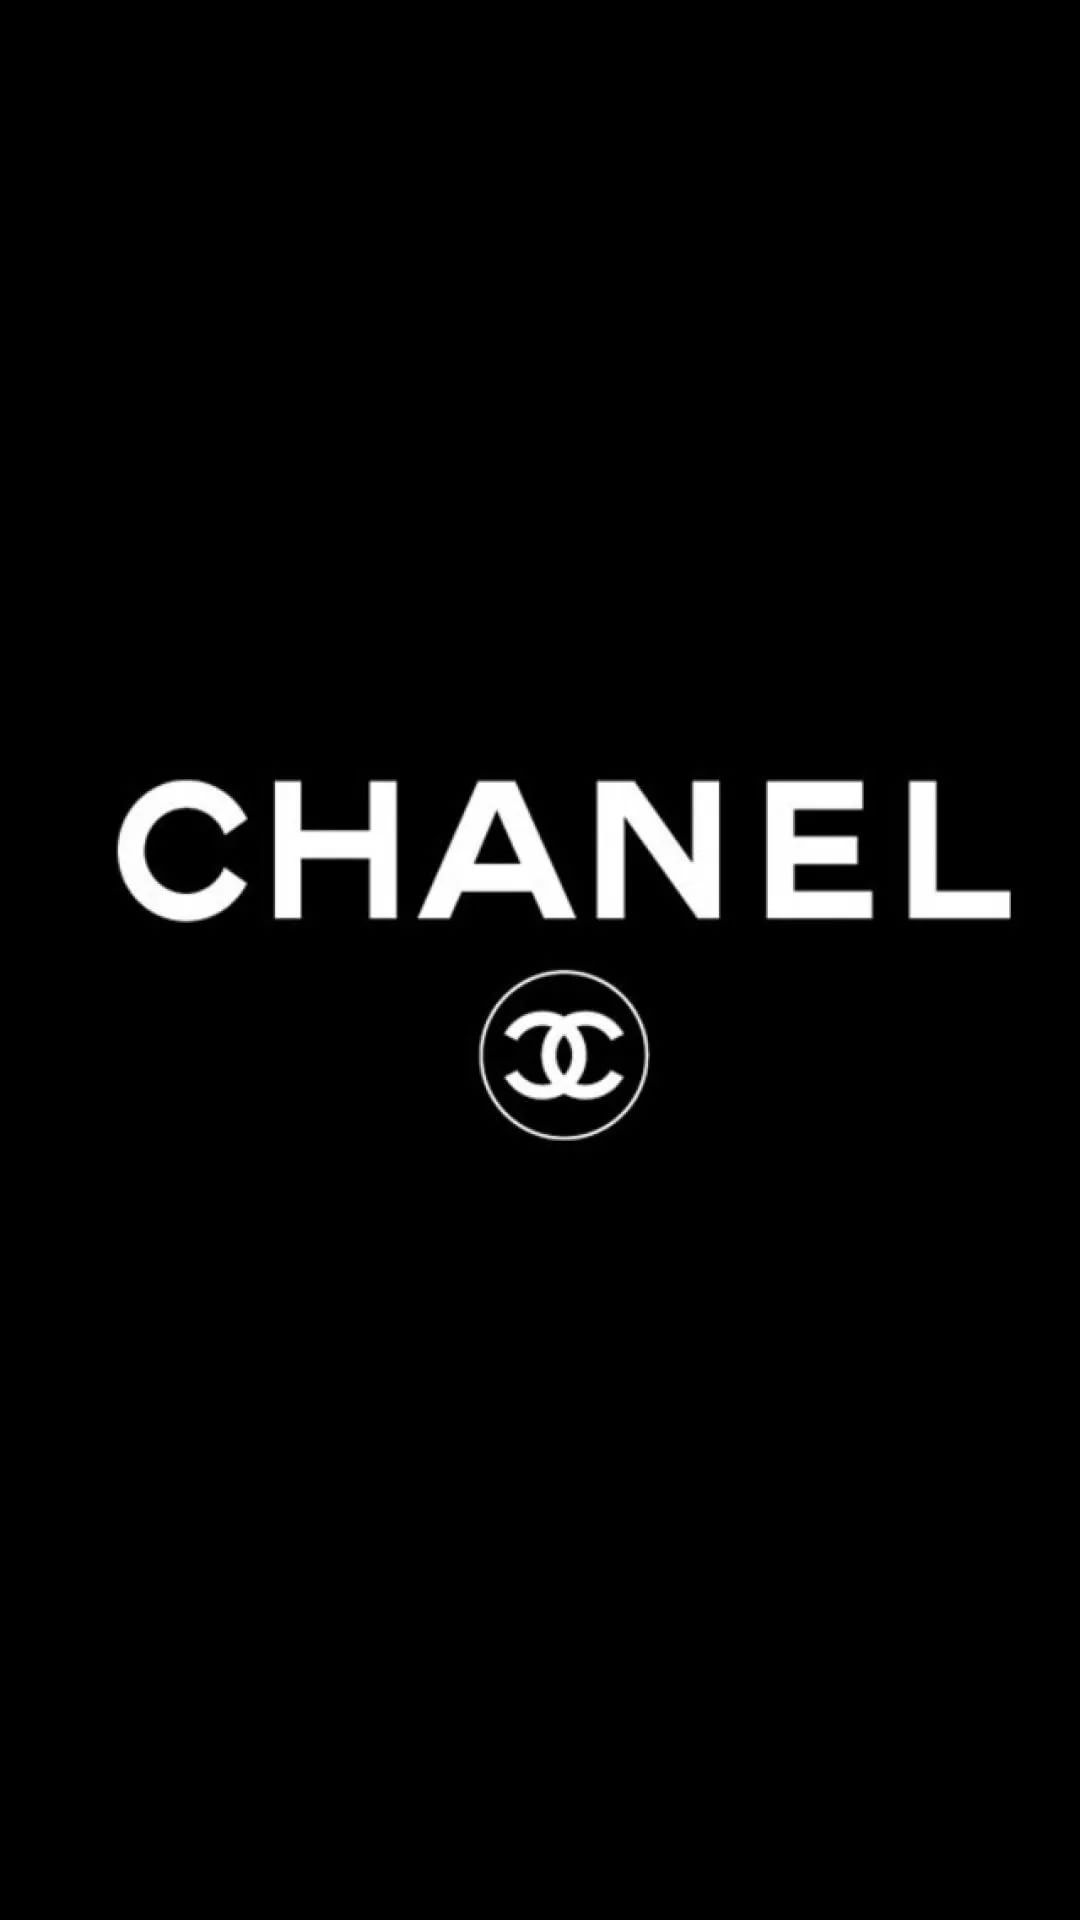 Chanel Background iPhone 5 wallpaper